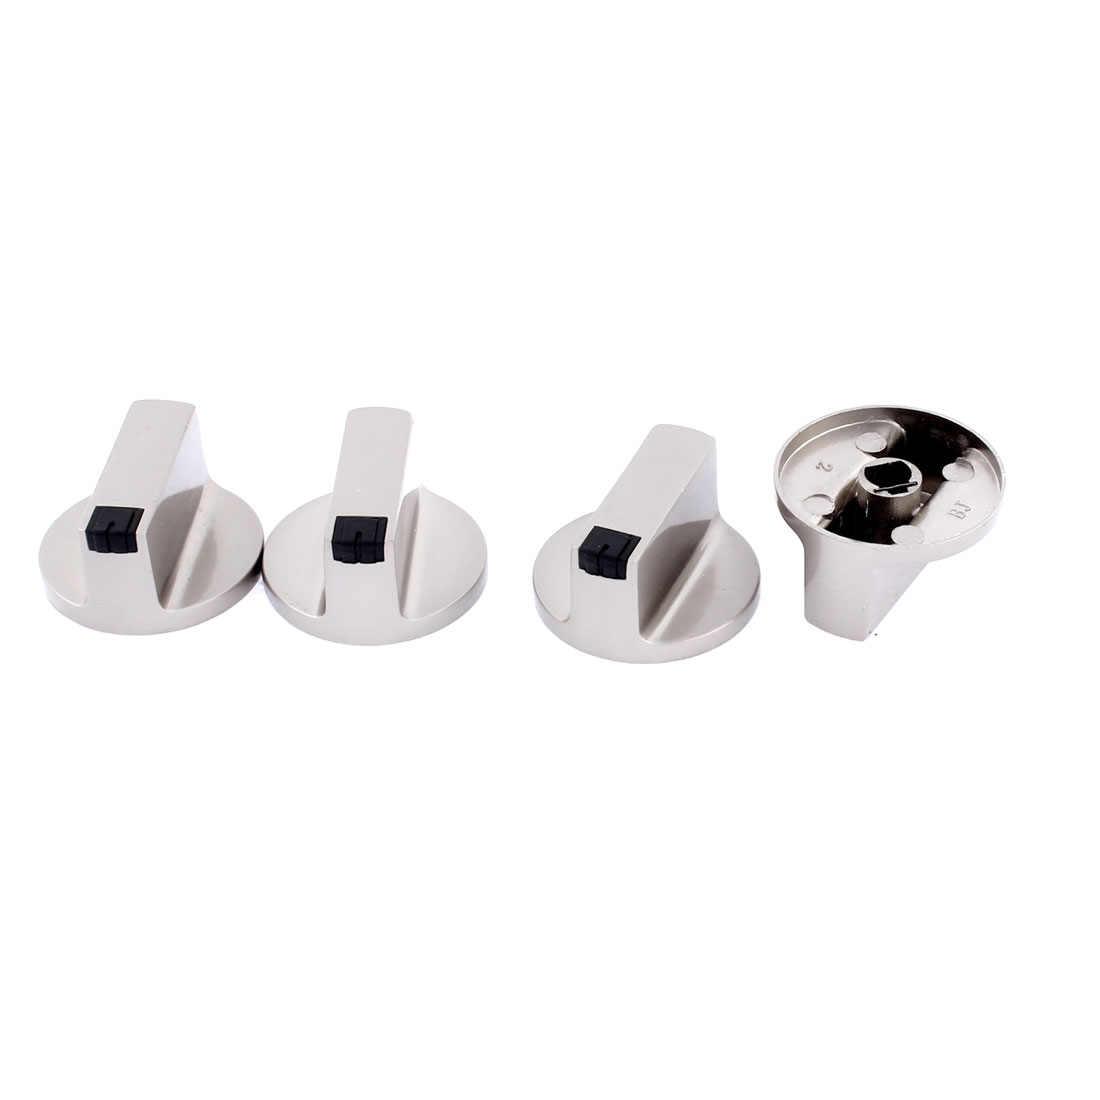 Oven Cooker Burner Gas Control Alloy Range Switch Knobs Silver Gray 4 Pcs